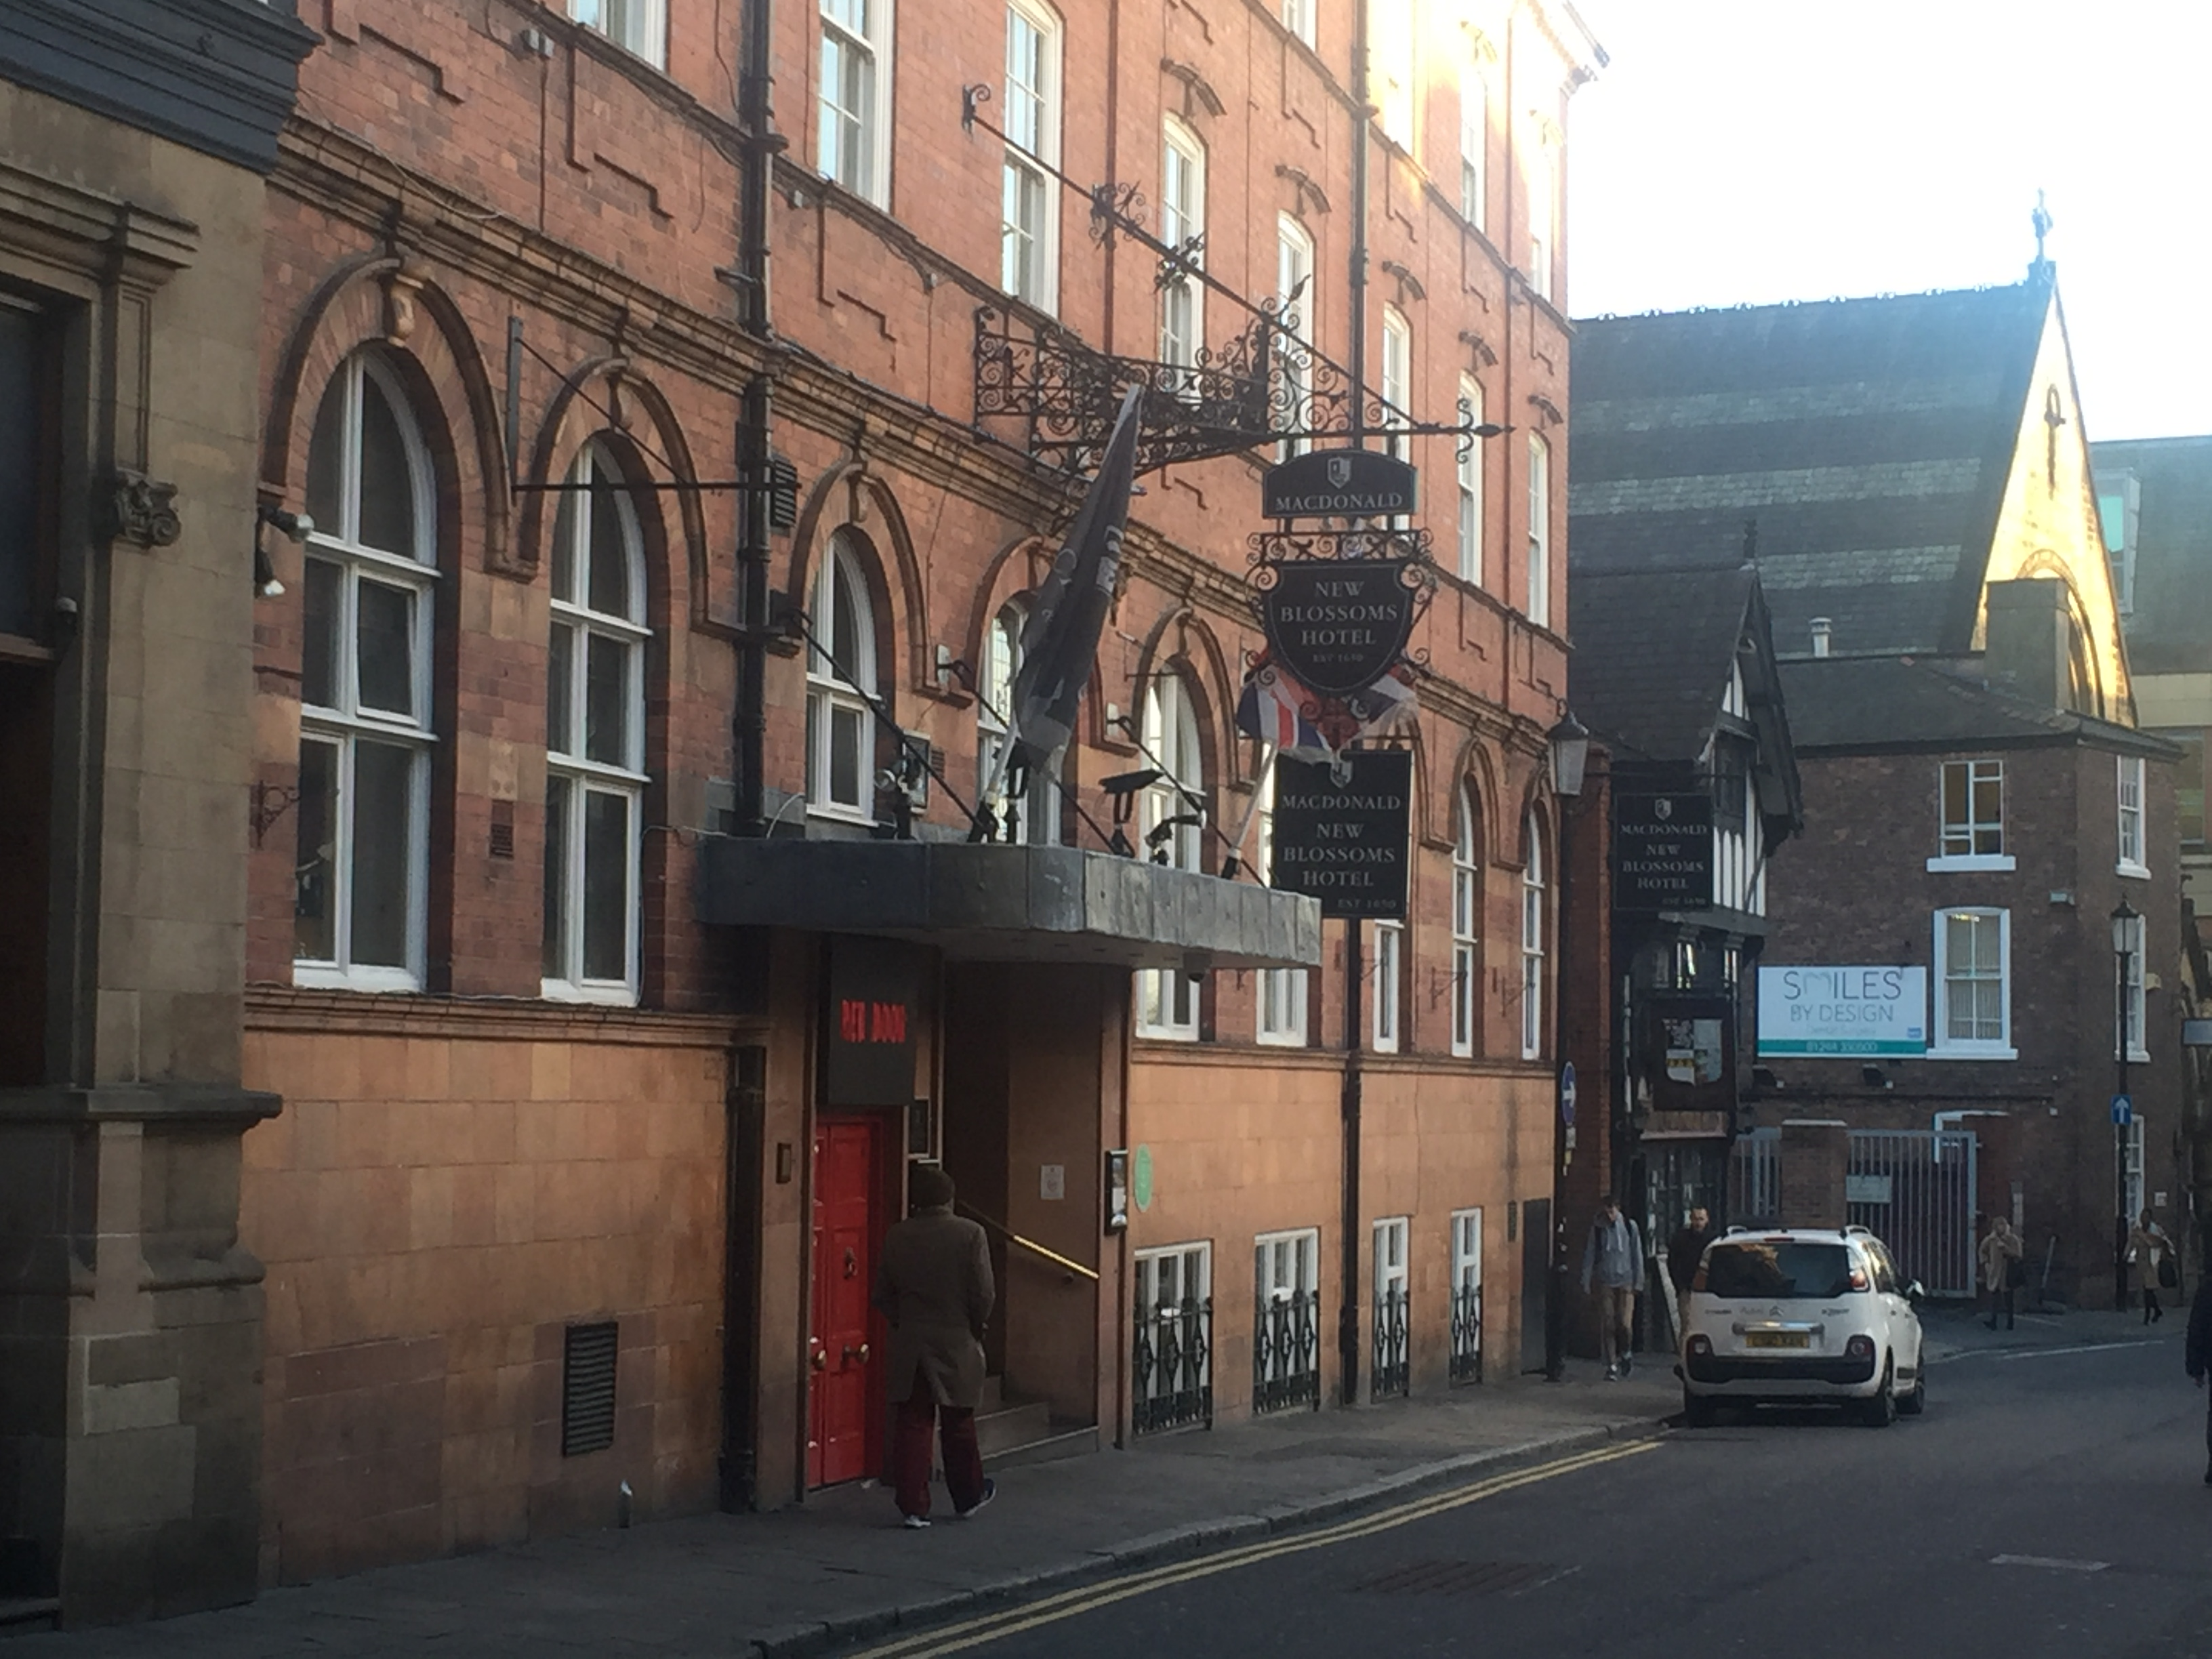 New Blossoms hotel entrance st John street Chester